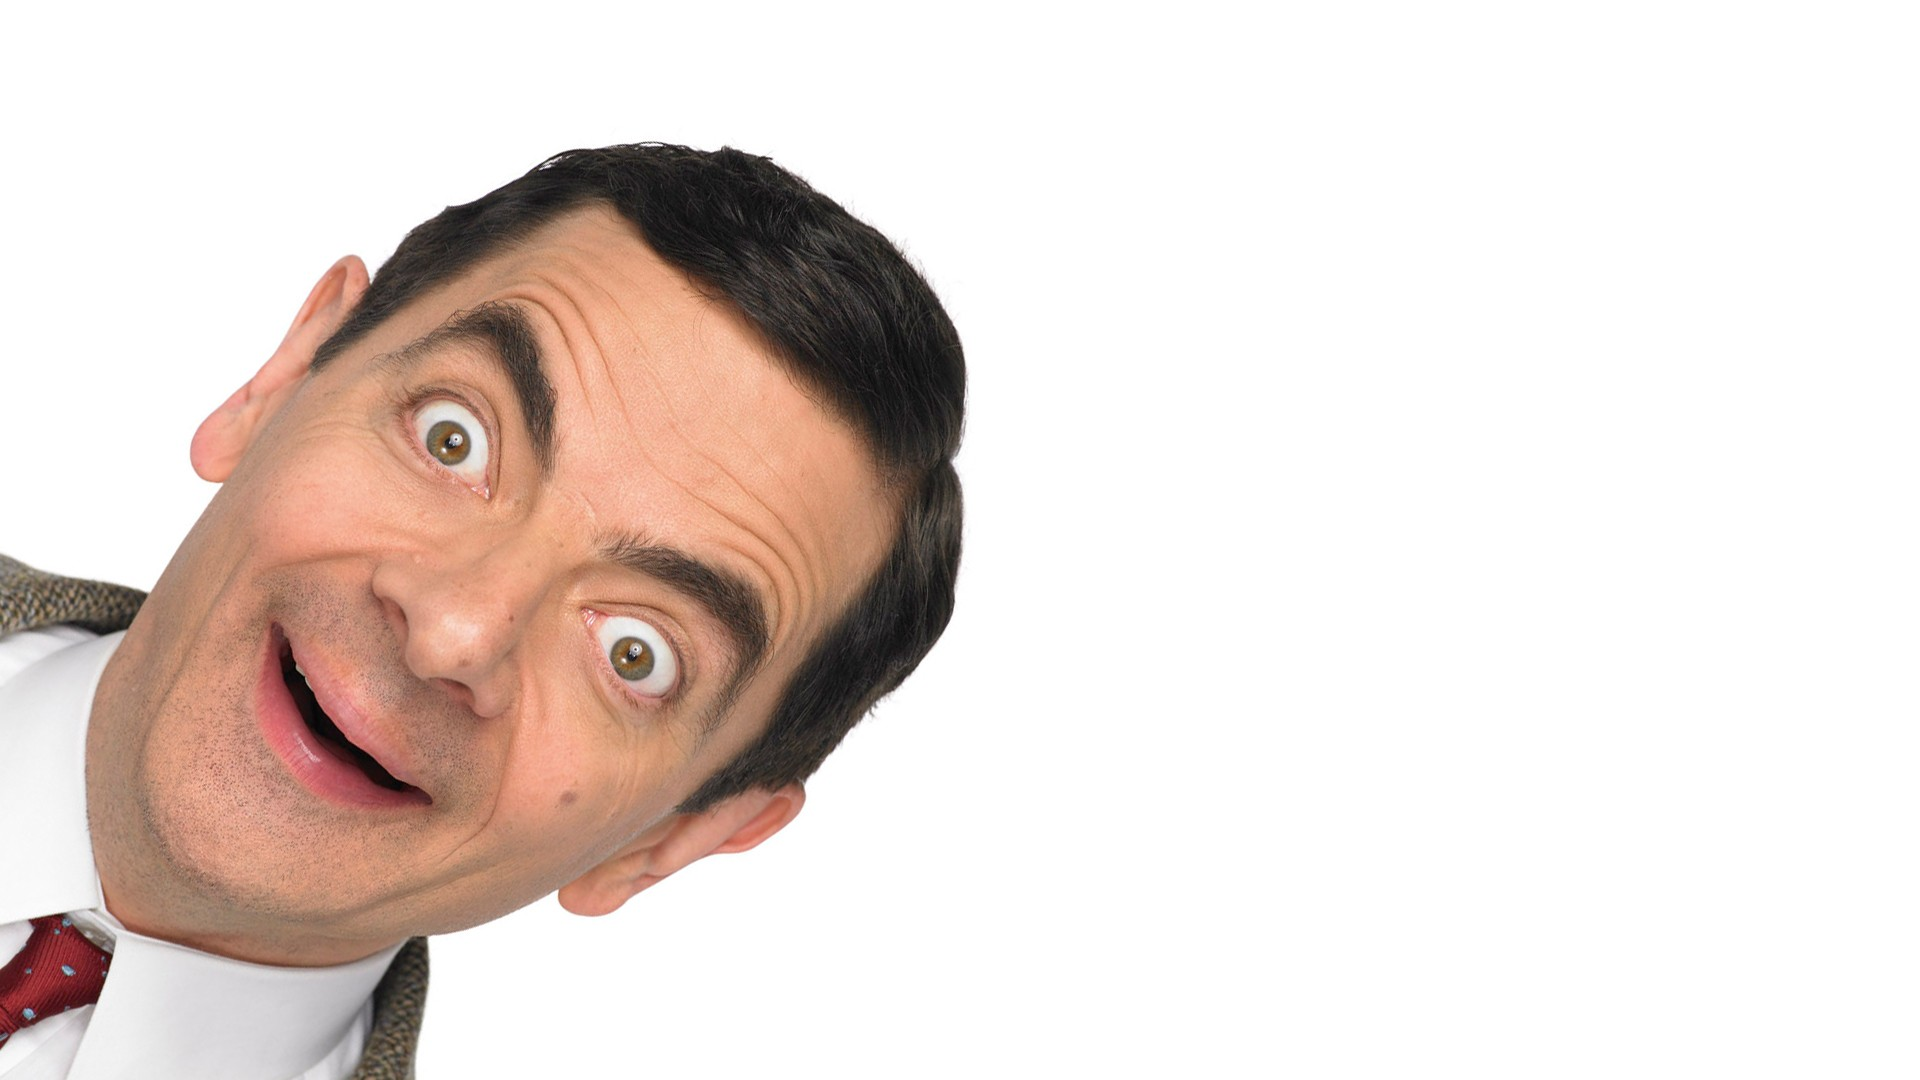 http://cdn.cinemur.fr/series/original/mr-bean-1483_52d2bf6006c64.jpg